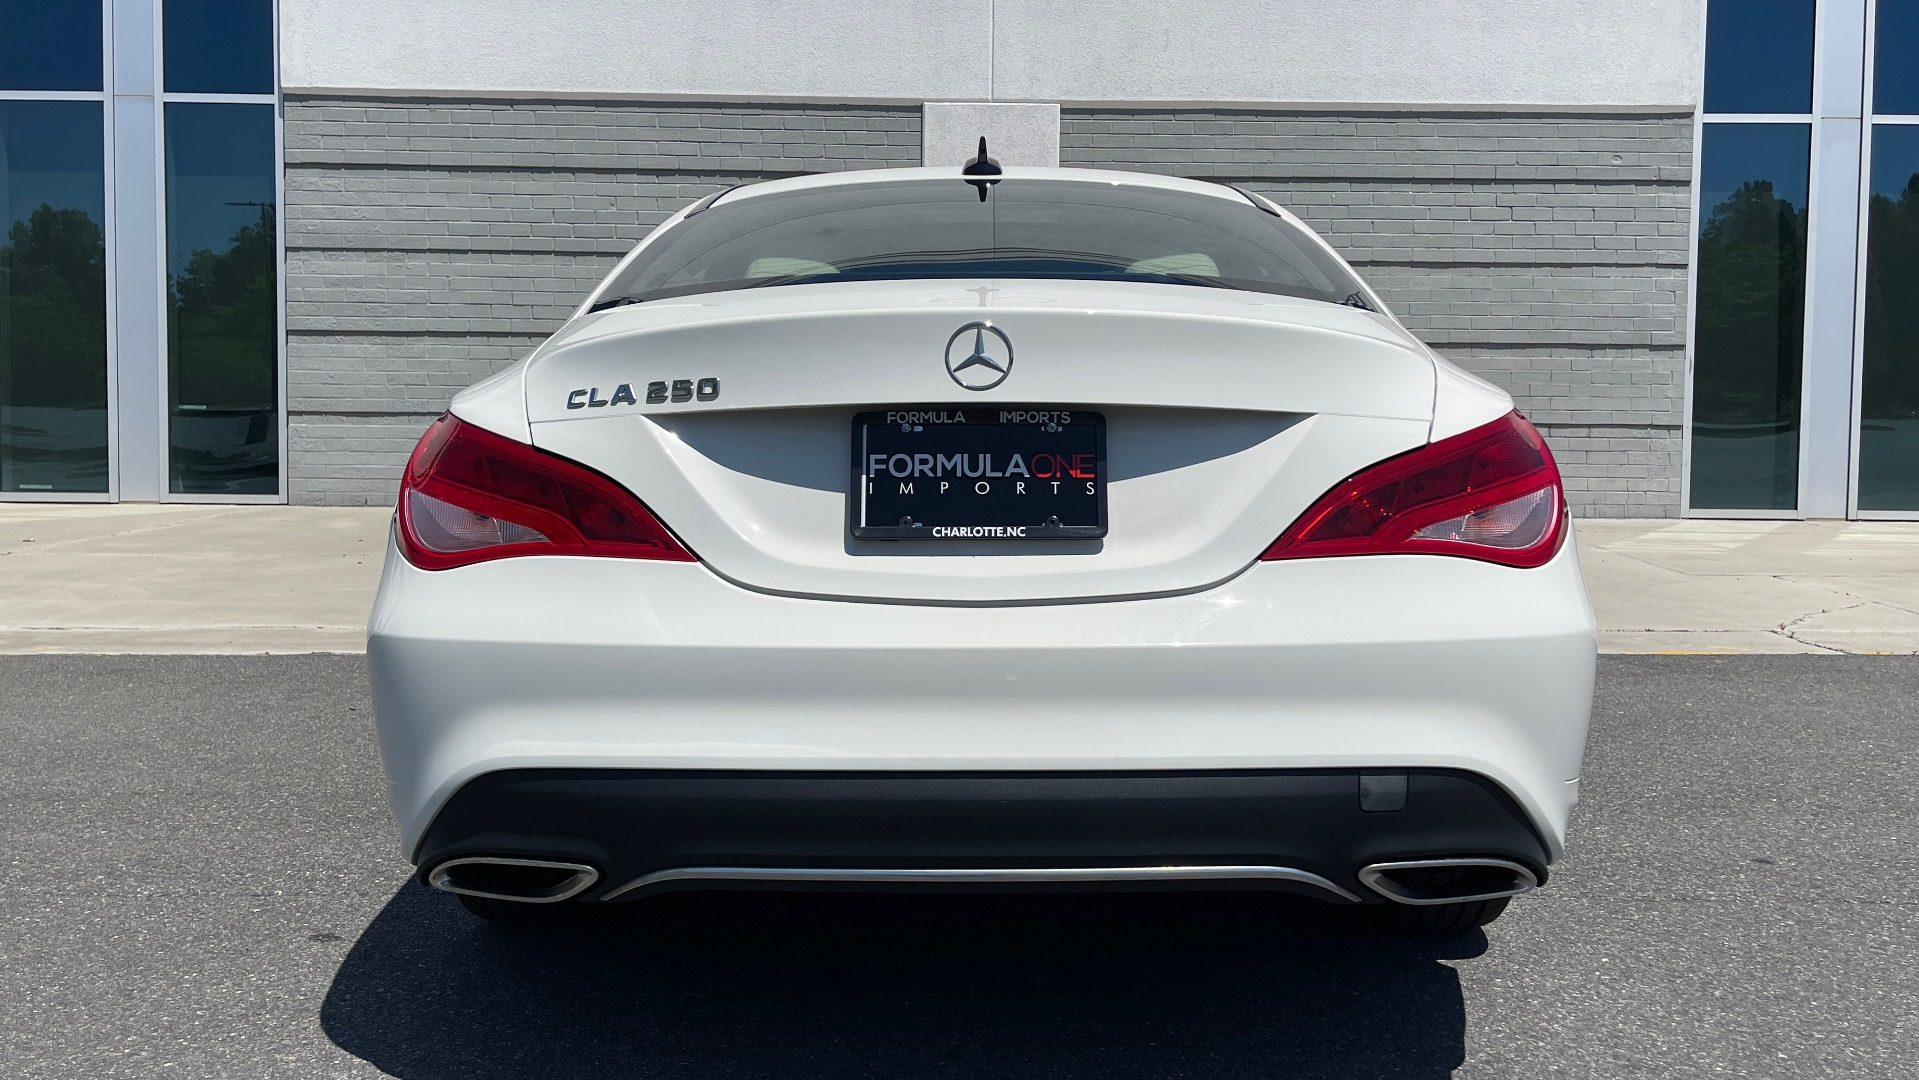 Used 2018 Mercedes-Benz CLA 250 PREMIUM / CONV PKG / APPLE / PANO-ROOF / REARVIEW for sale $29,795 at Formula Imports in Charlotte NC 28227 21